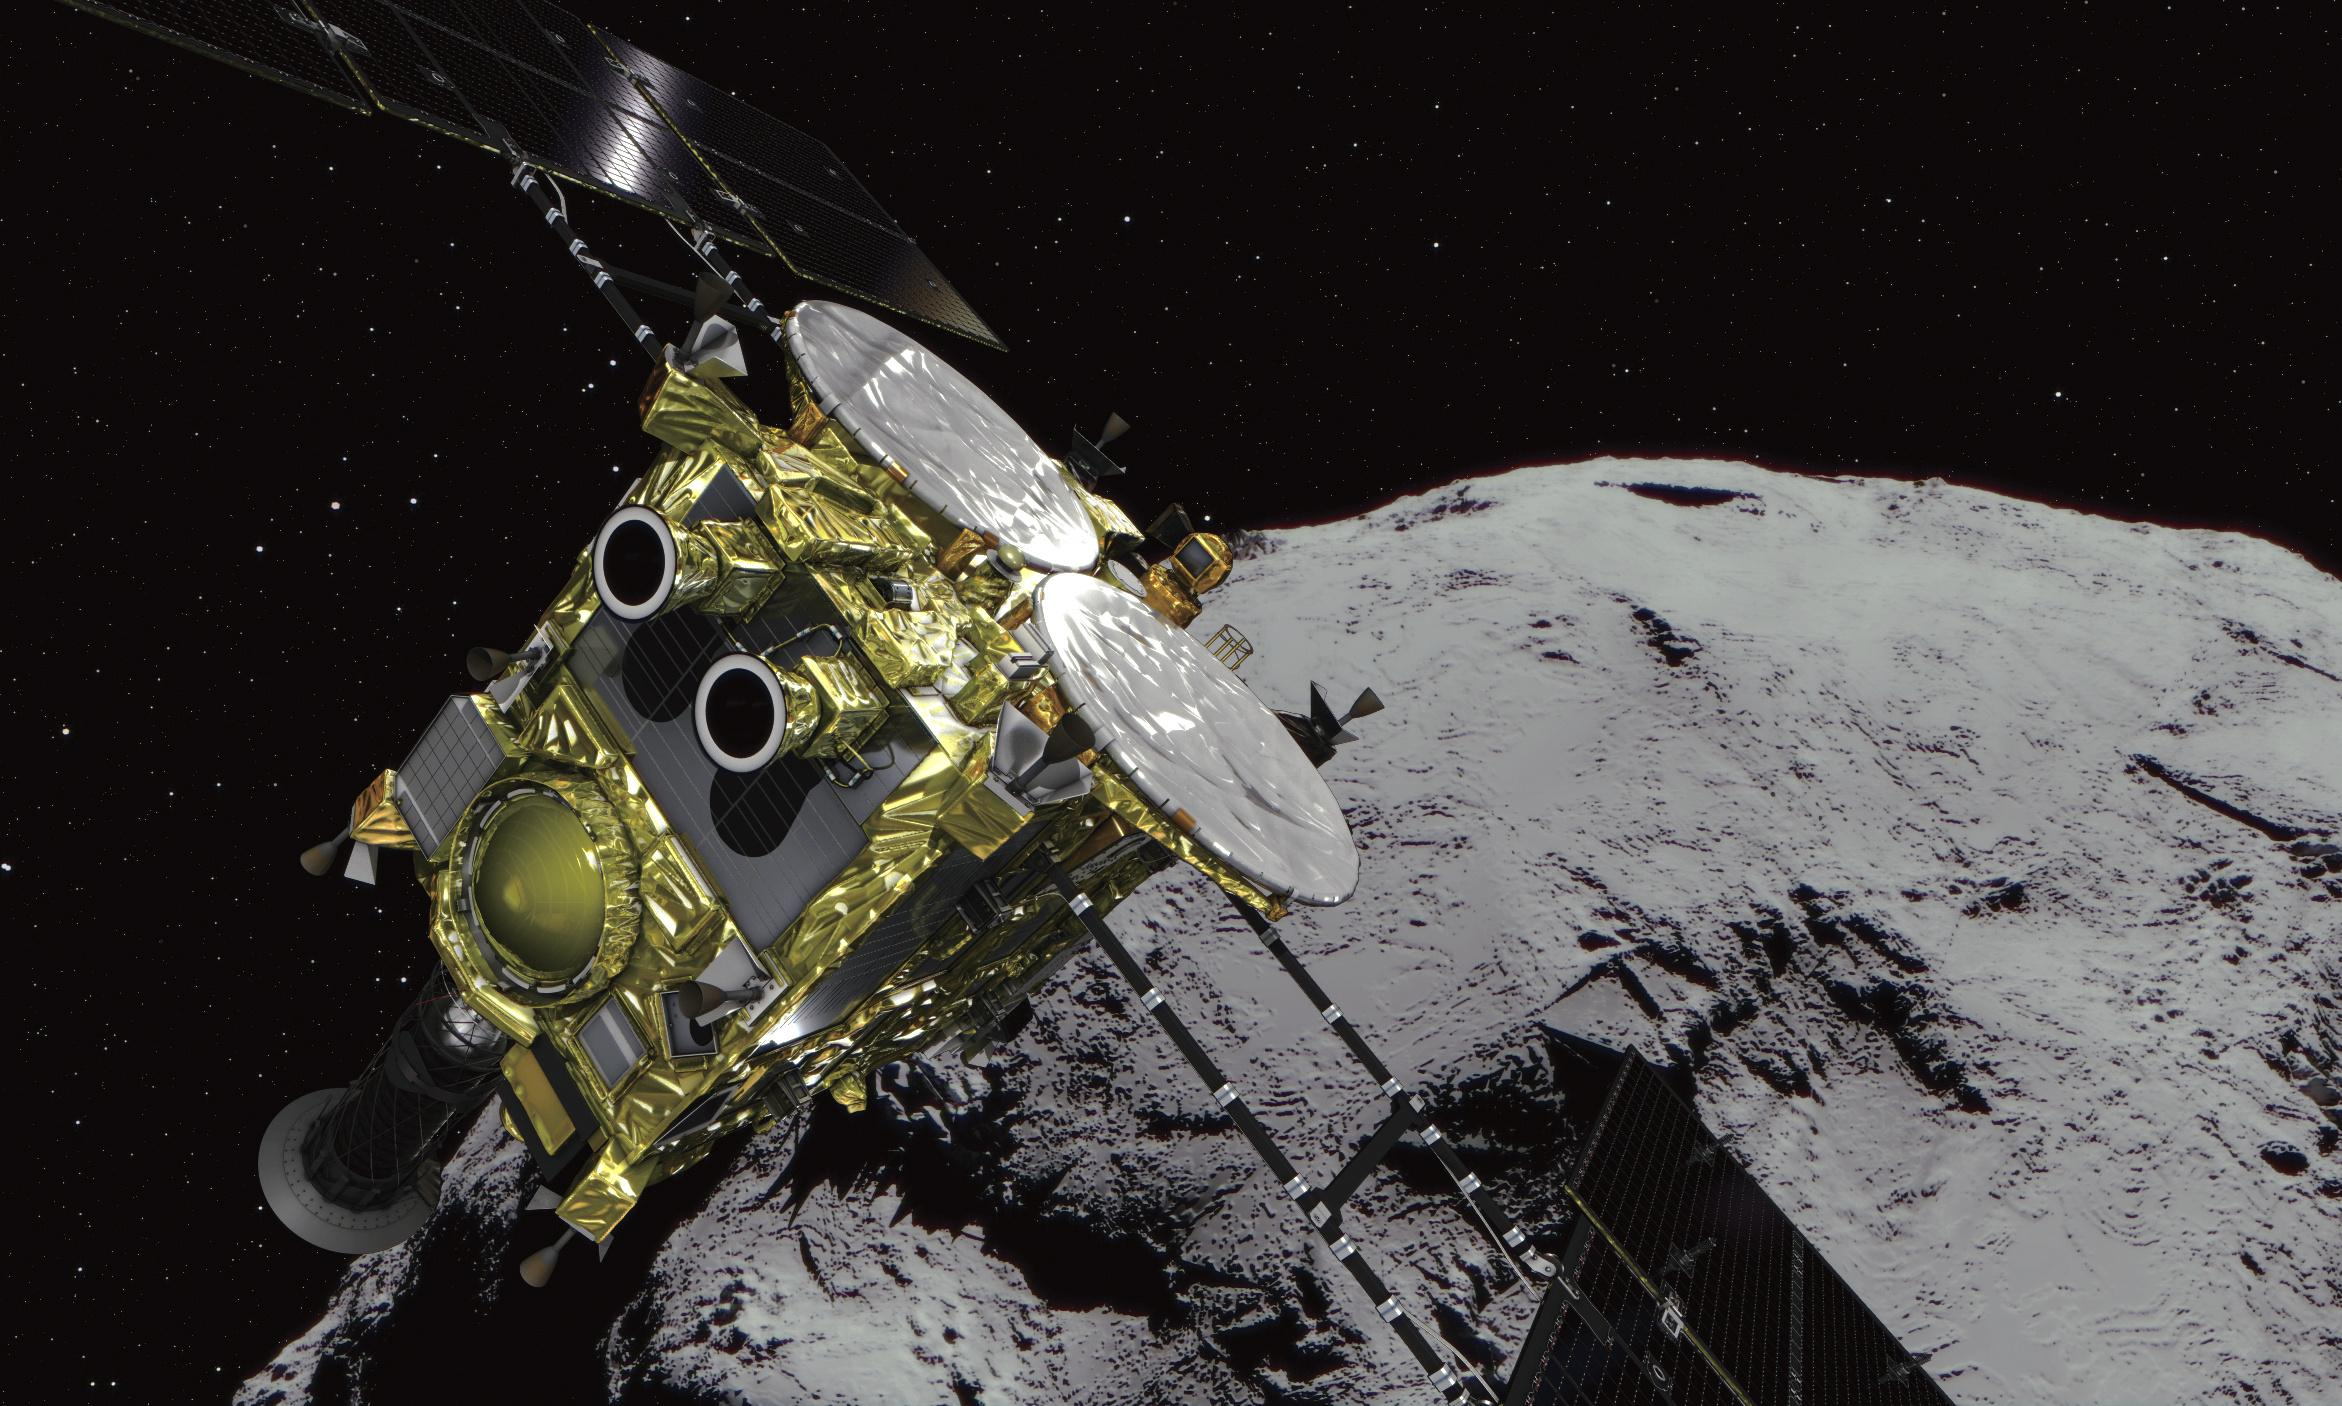 Falcon has landed: Japan's Hayabusa2 probe touches down on asteroid